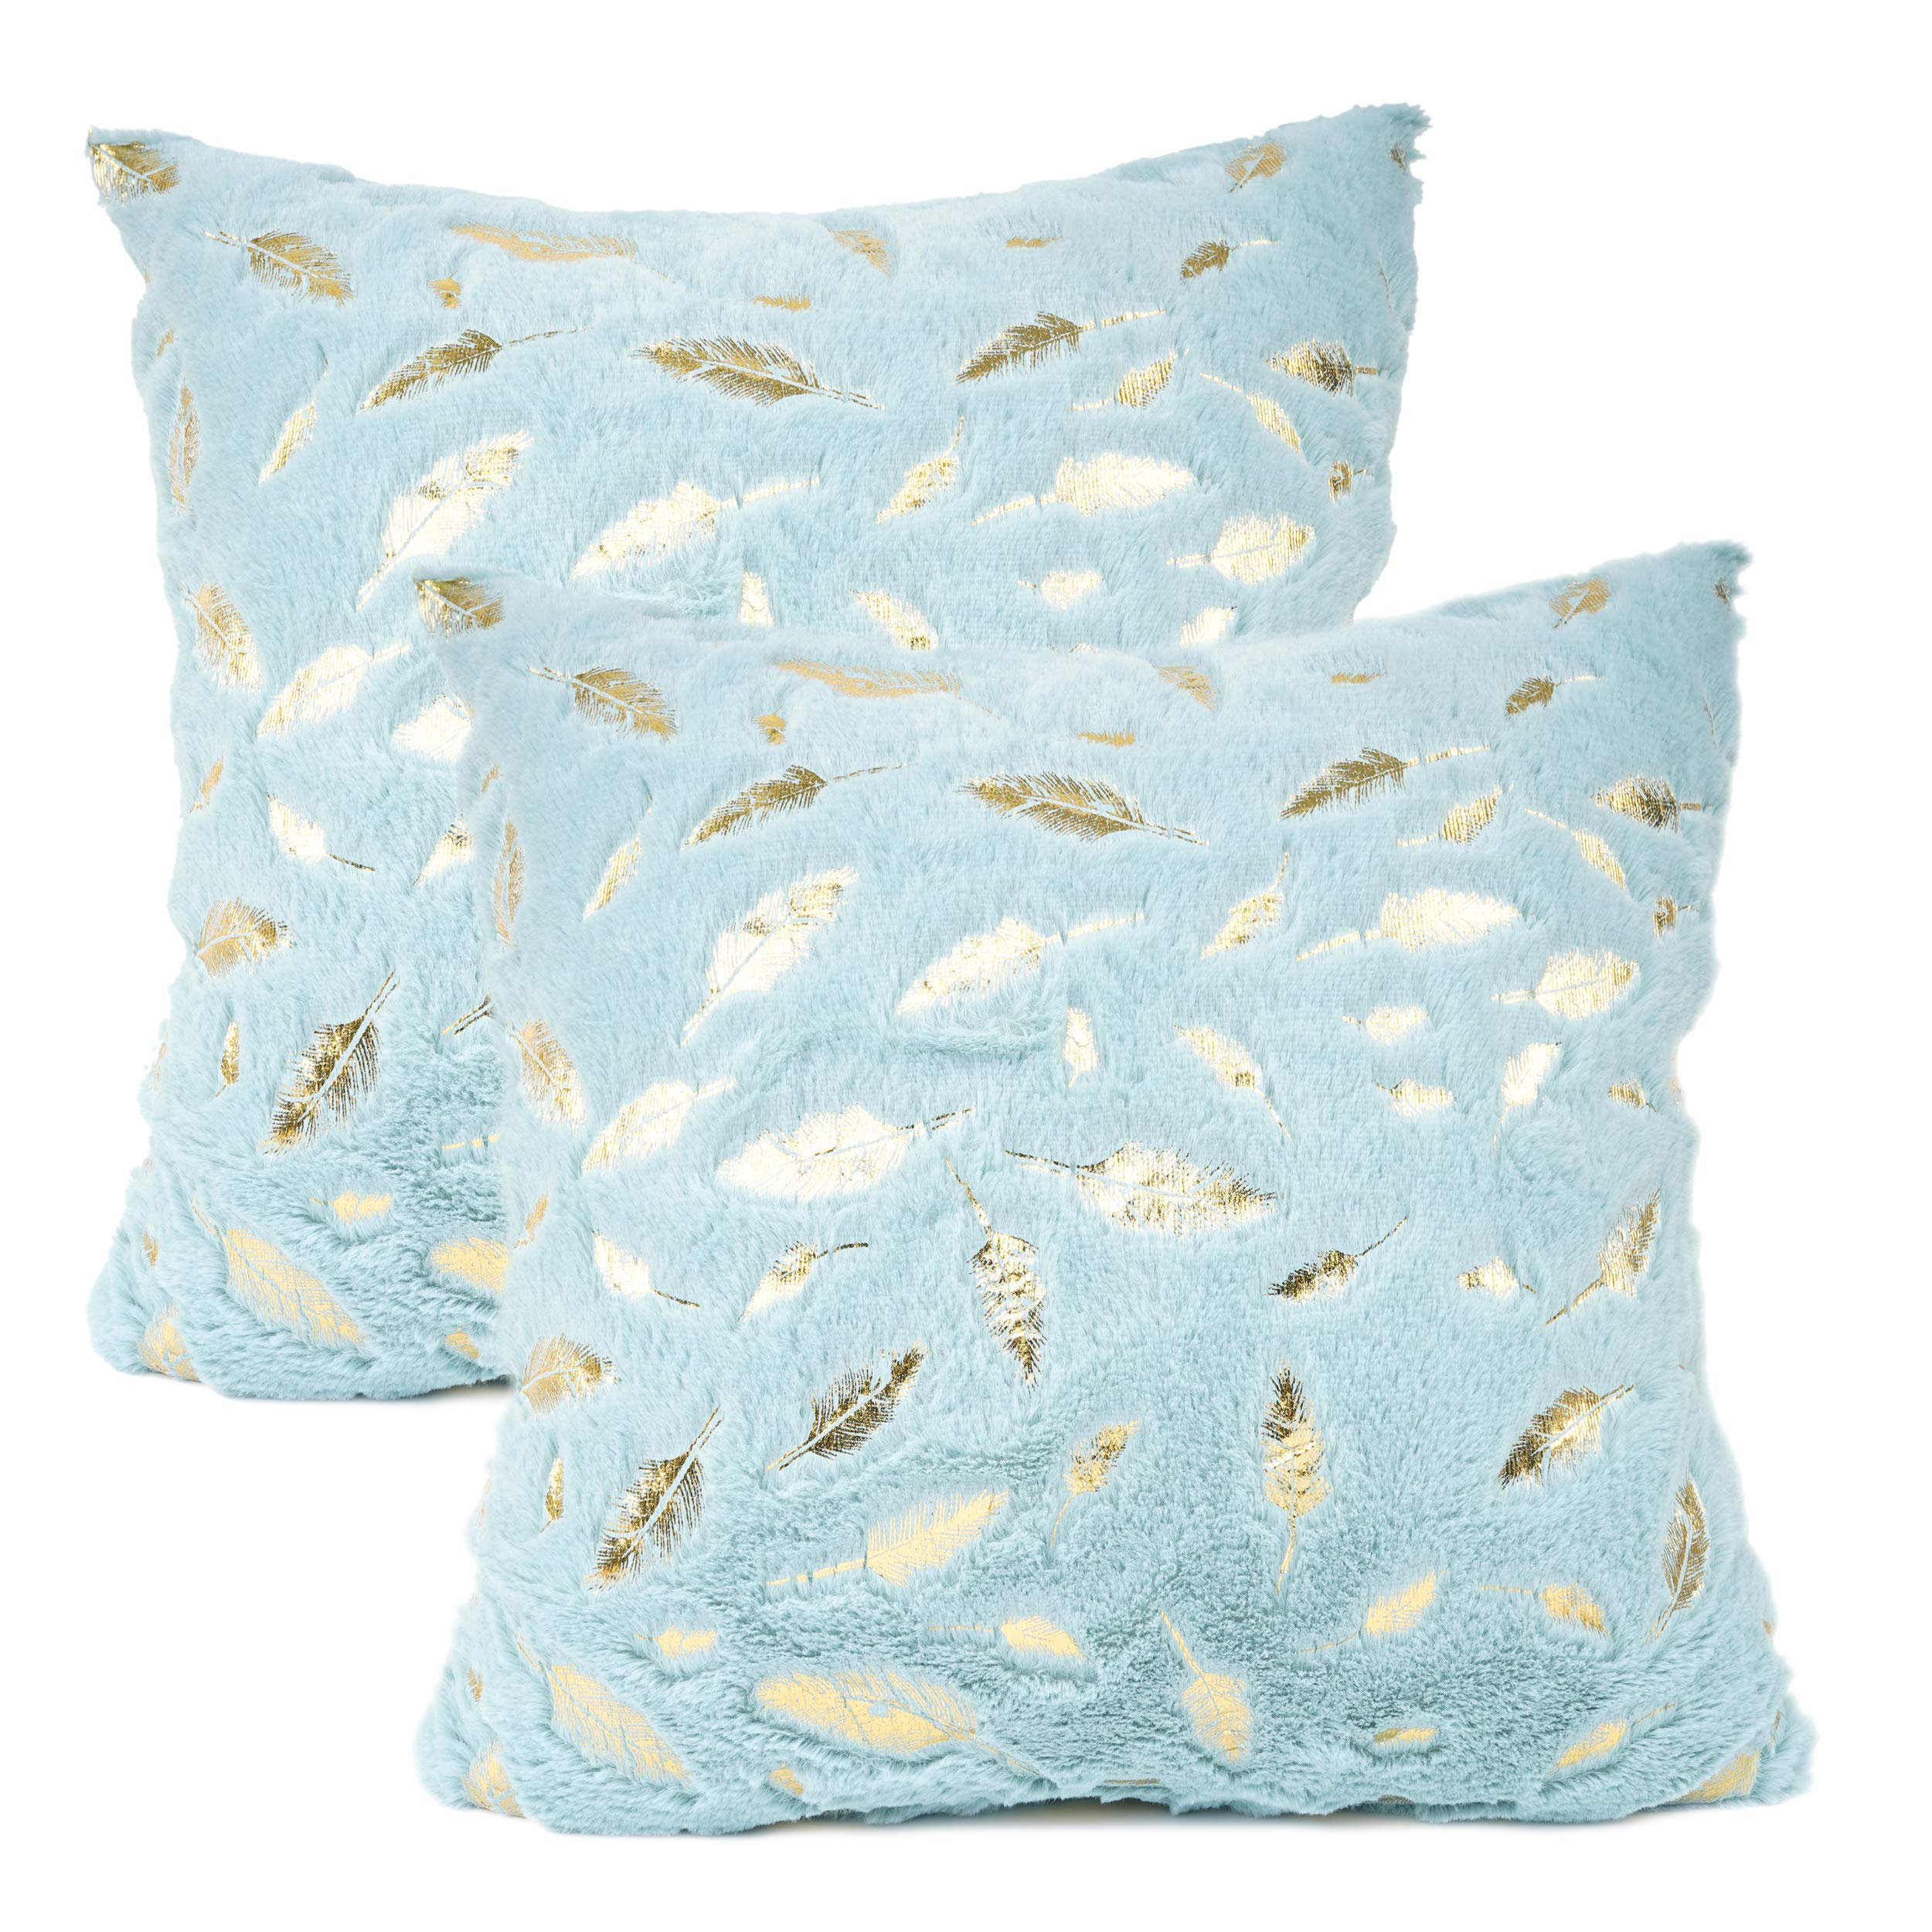 YOUR SMILE Pack of 2 Solid Color Gold Feather Plush Fur Decorative Throw Pillow Case Cushion Cover Pillowcase for Couch Sofa Bed,18 x 18 Inches,Teal